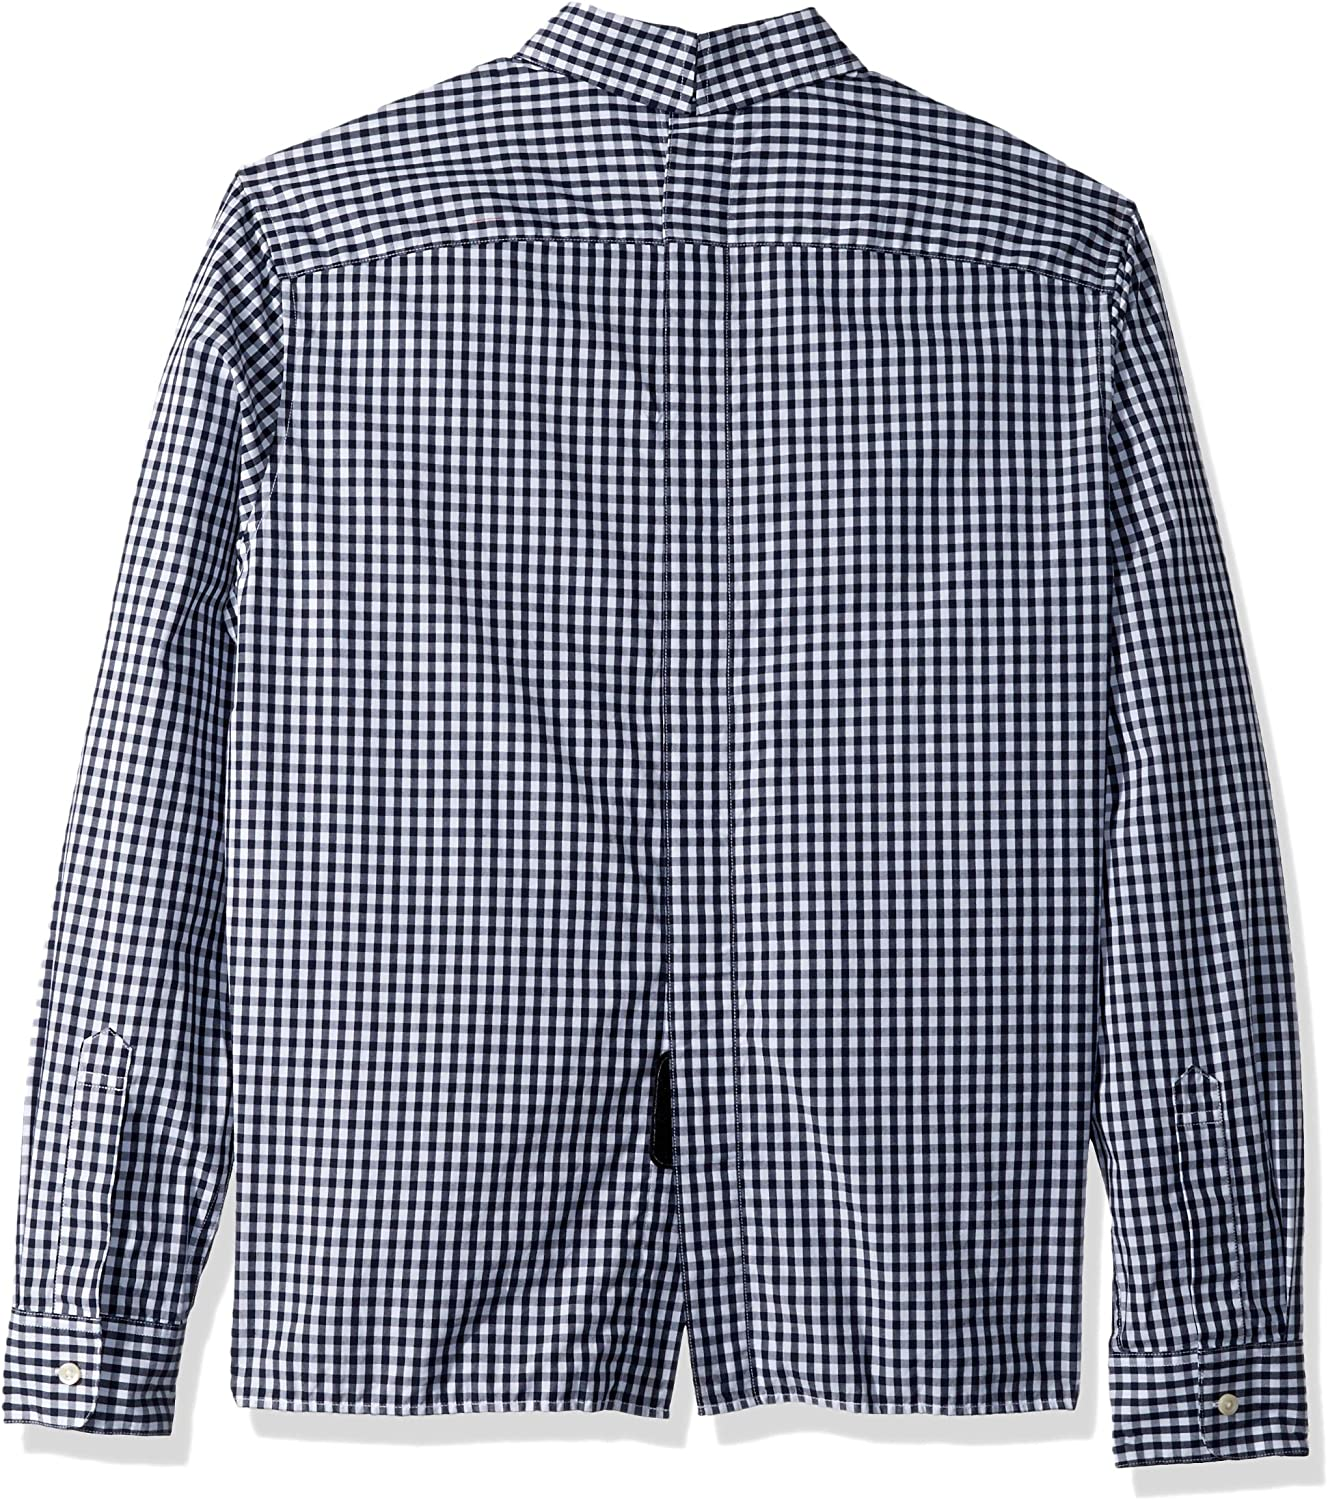 Tommy Hilfiger Mens Adaptive Seated Fit Magnetic Button Shirt with Touch Fastener Back